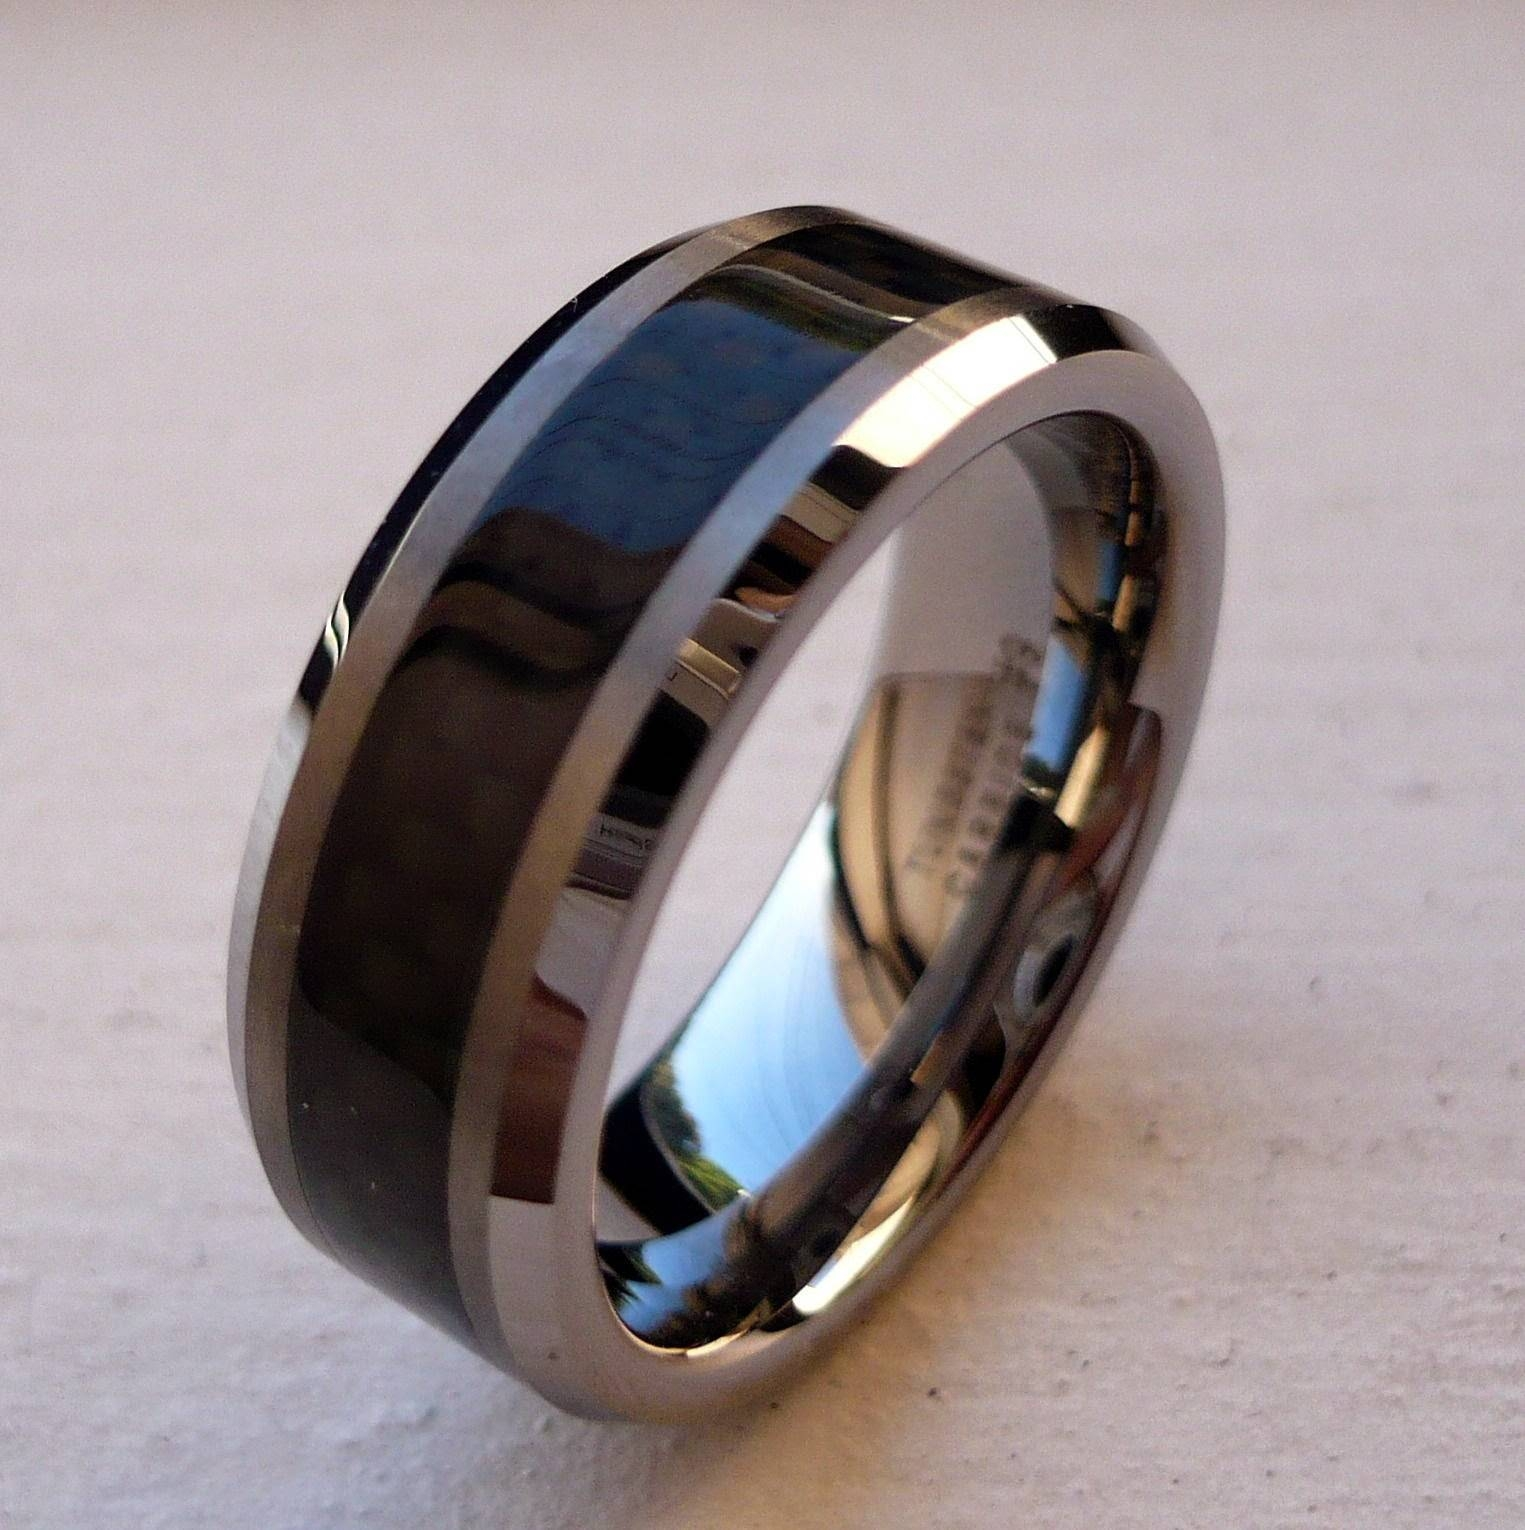 Some Designs Of Black Tungsten Wedding Bands | Wedding Ideas Intended For Matte Black Men's Wedding Bands (View 12 of 15)